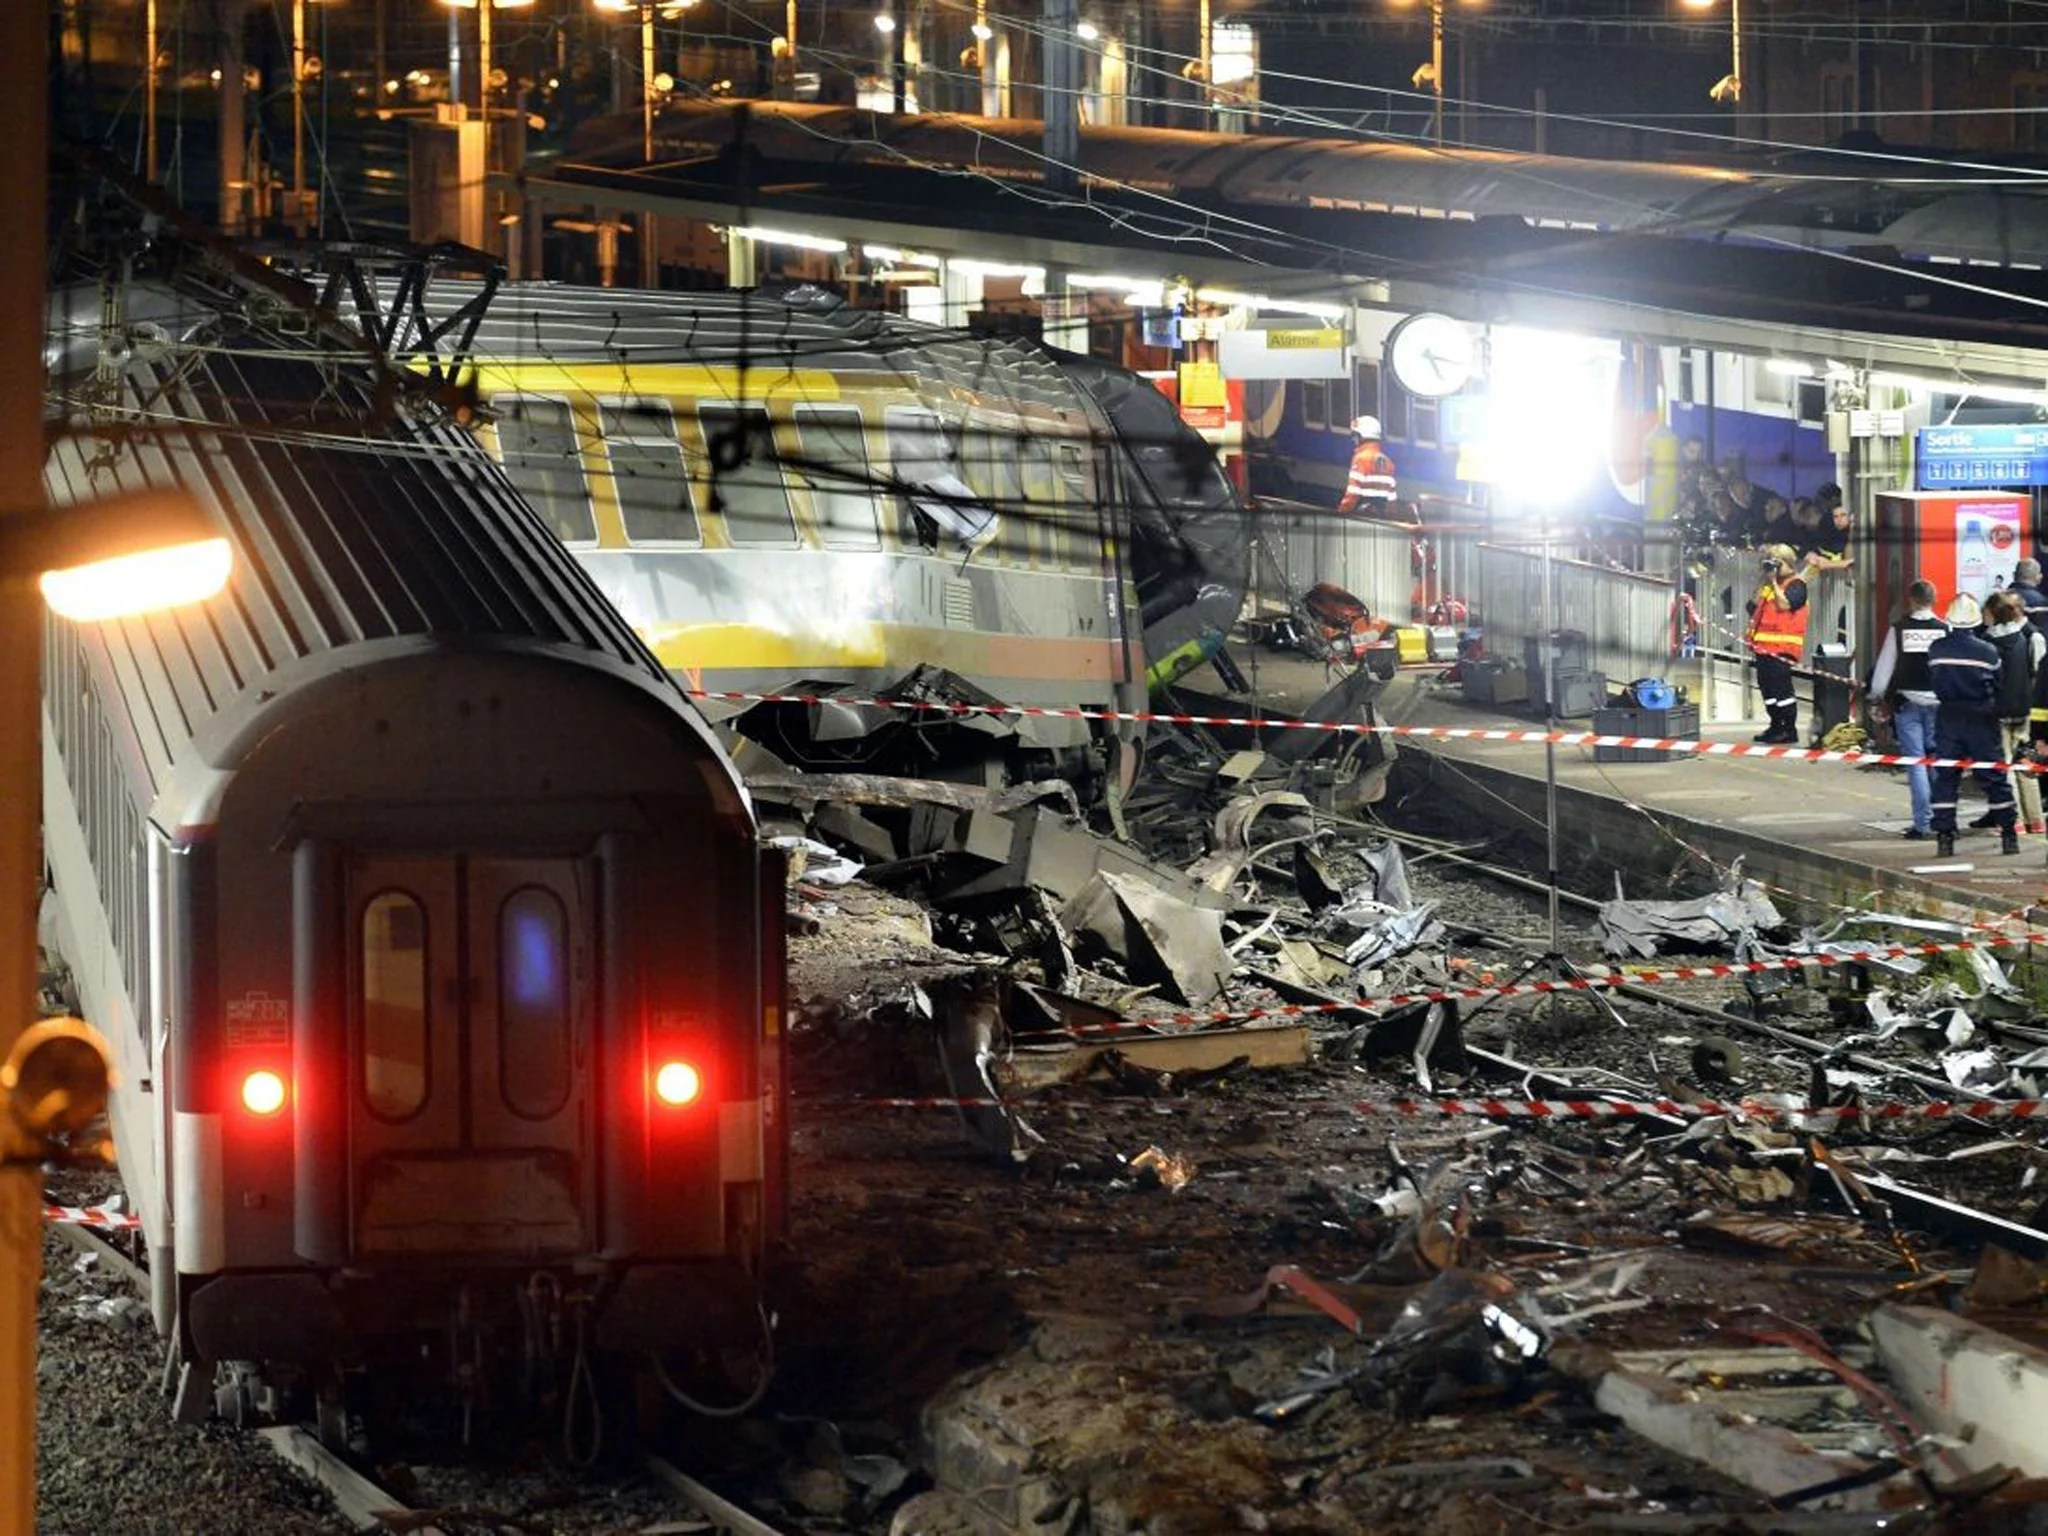 Paris Train Paris Train Derailment That Killed Six And Injured Dozens Caused